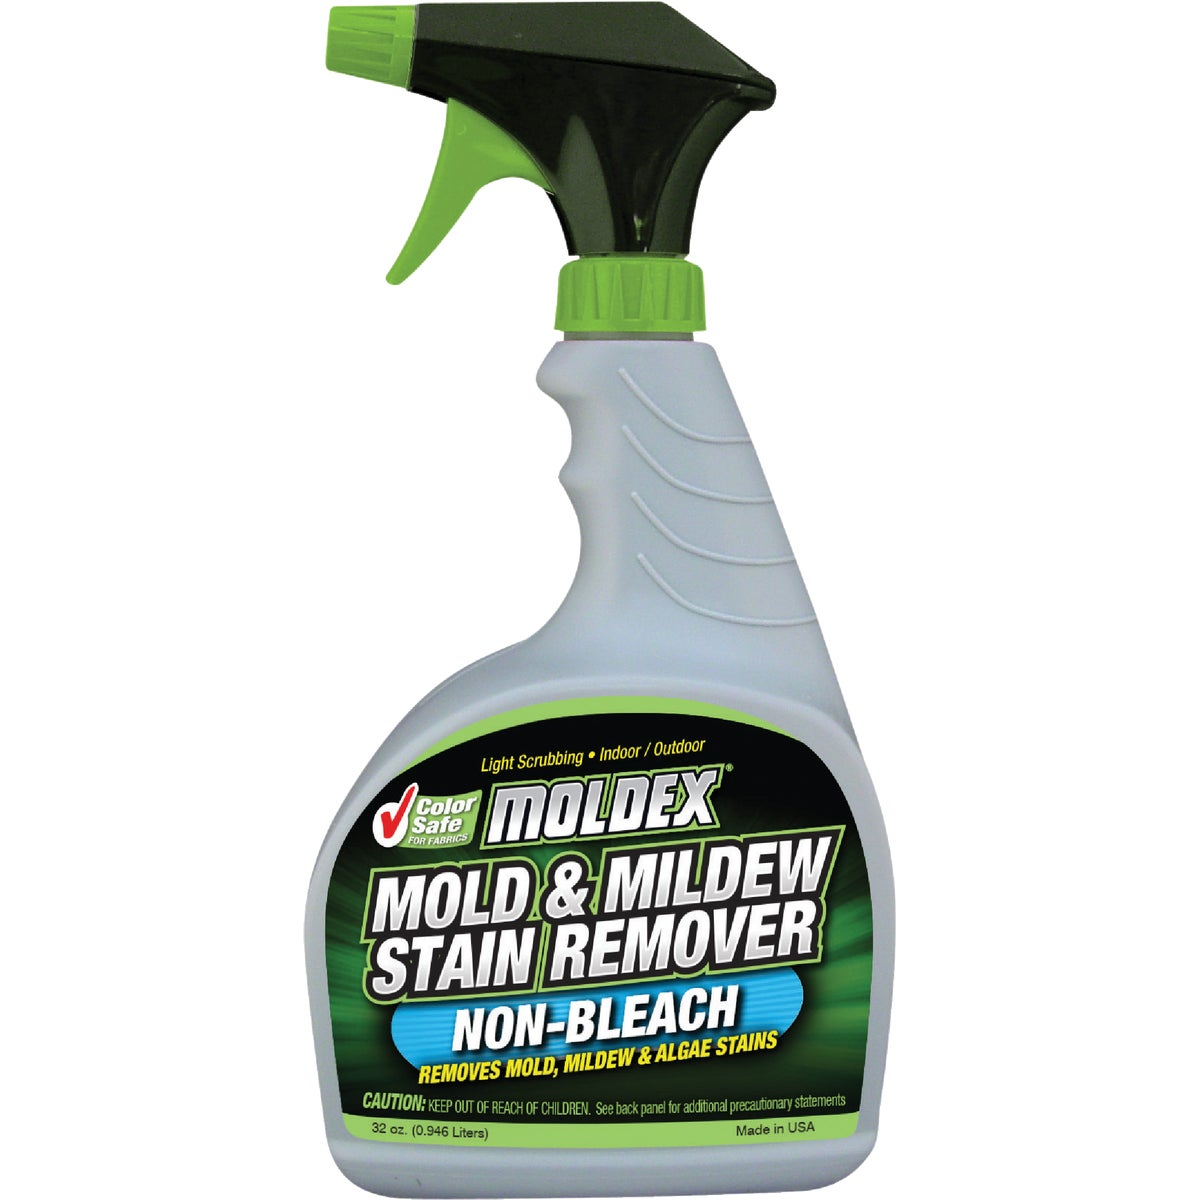 MLDX DEEP STAIN REMOVER